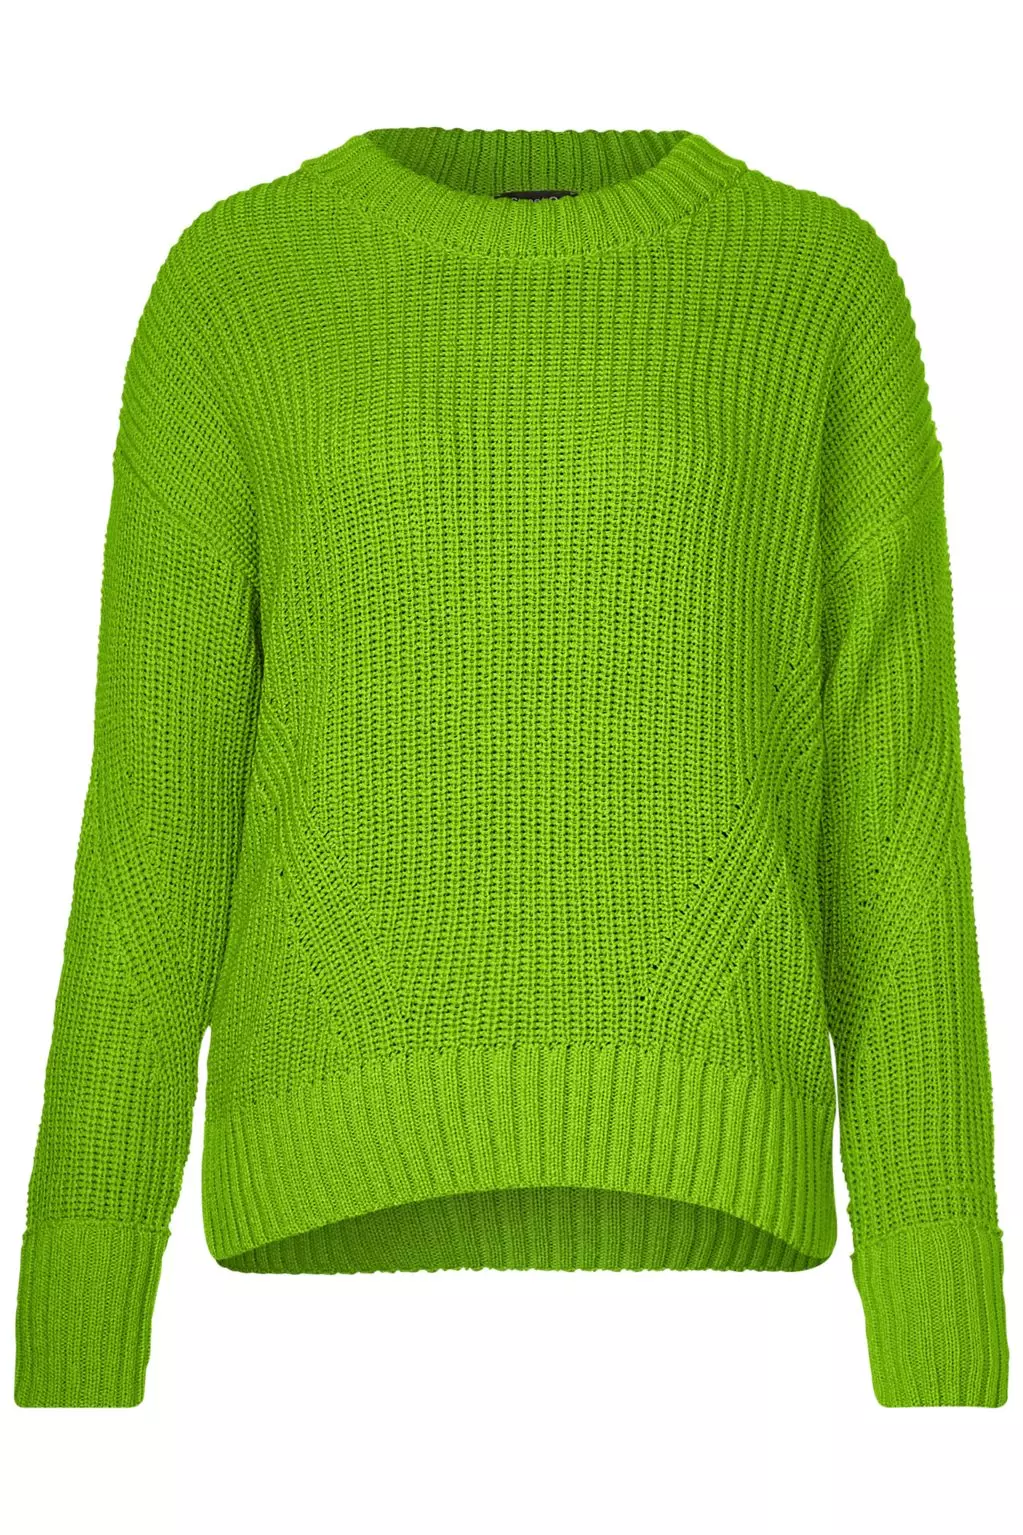 Knitted Sweater in Striking Color Flash Lime